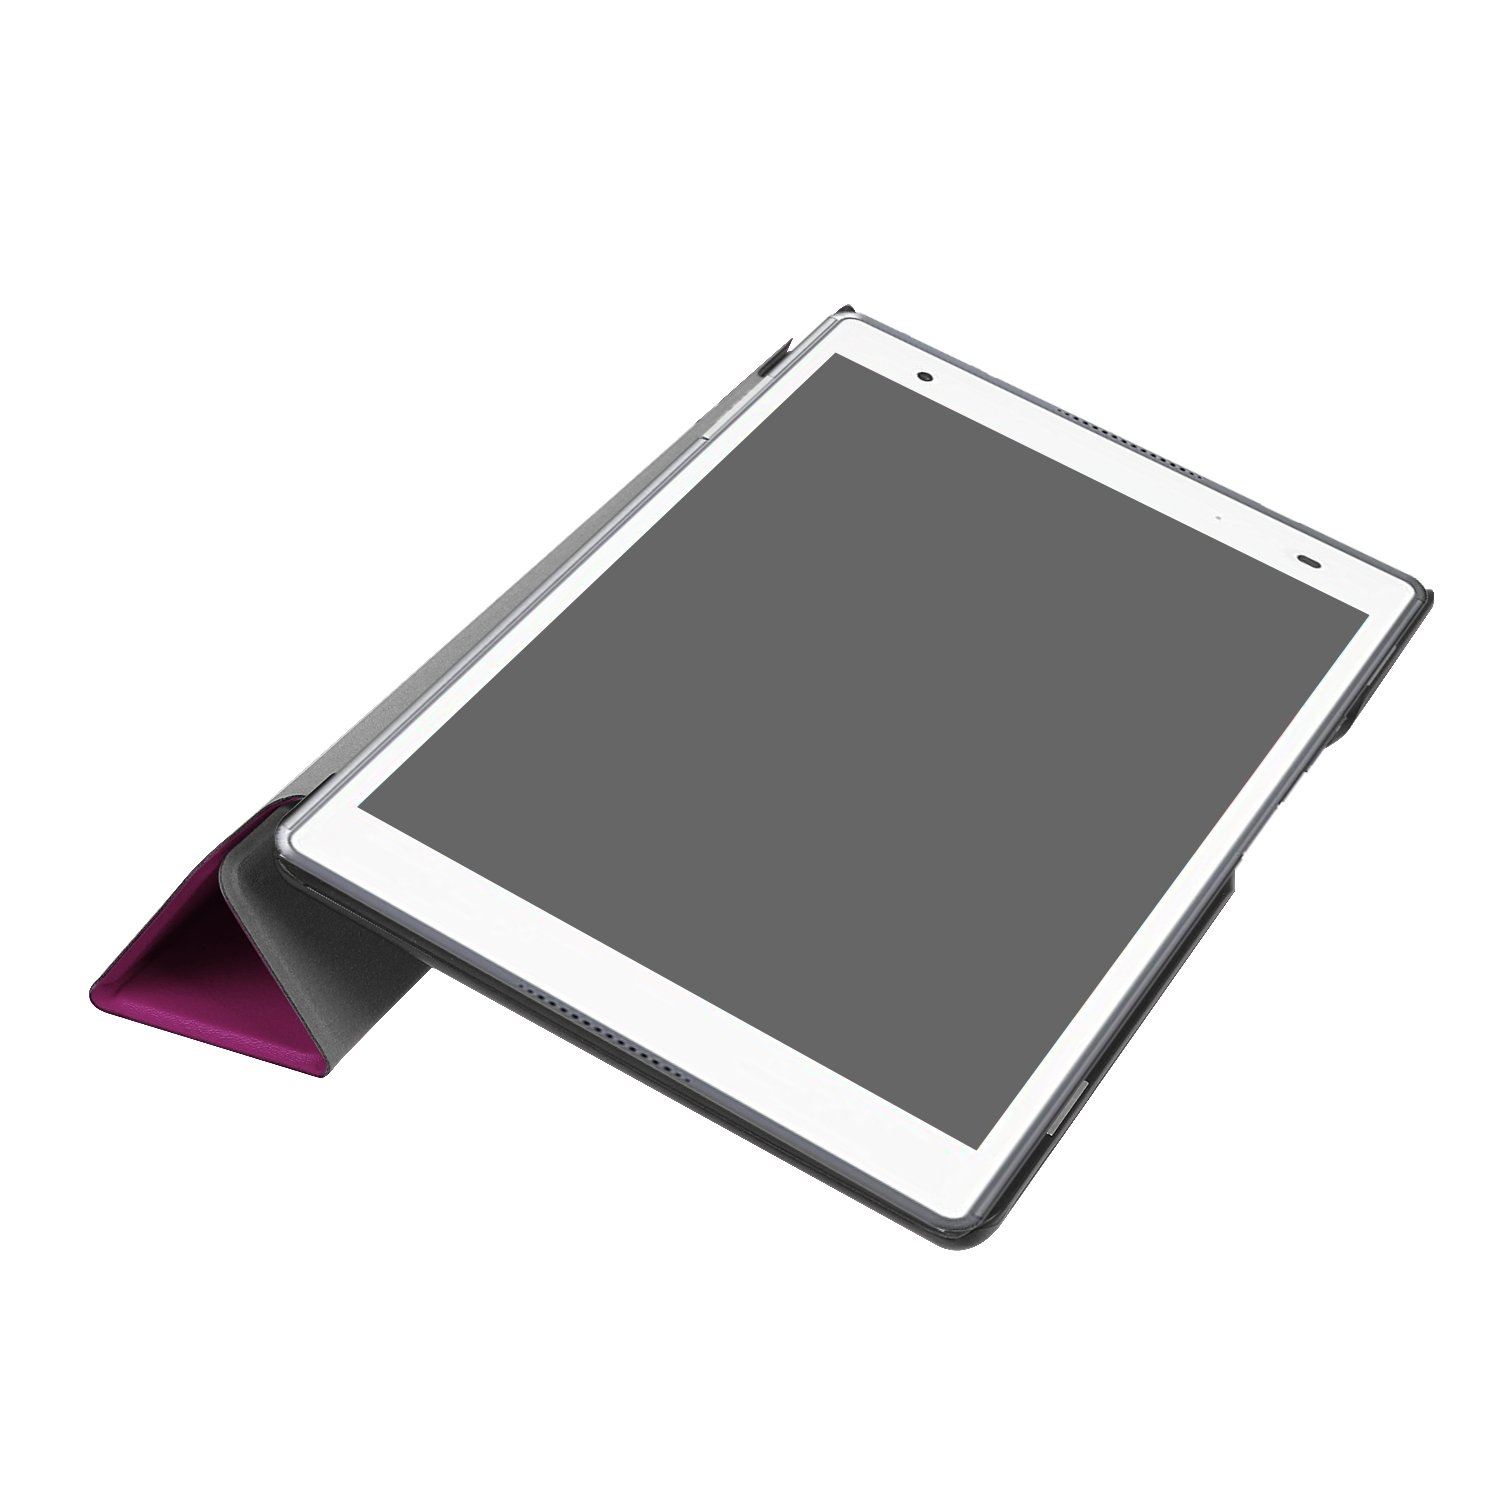 2017 Release Colorful Cube Ratesell Tri-Fold Ultra Slim Stand Smart Case Cover for Lenovo Tab 4 8 inch TB-8504F//N Lenovo Tab 4 8 TB-8504F Case